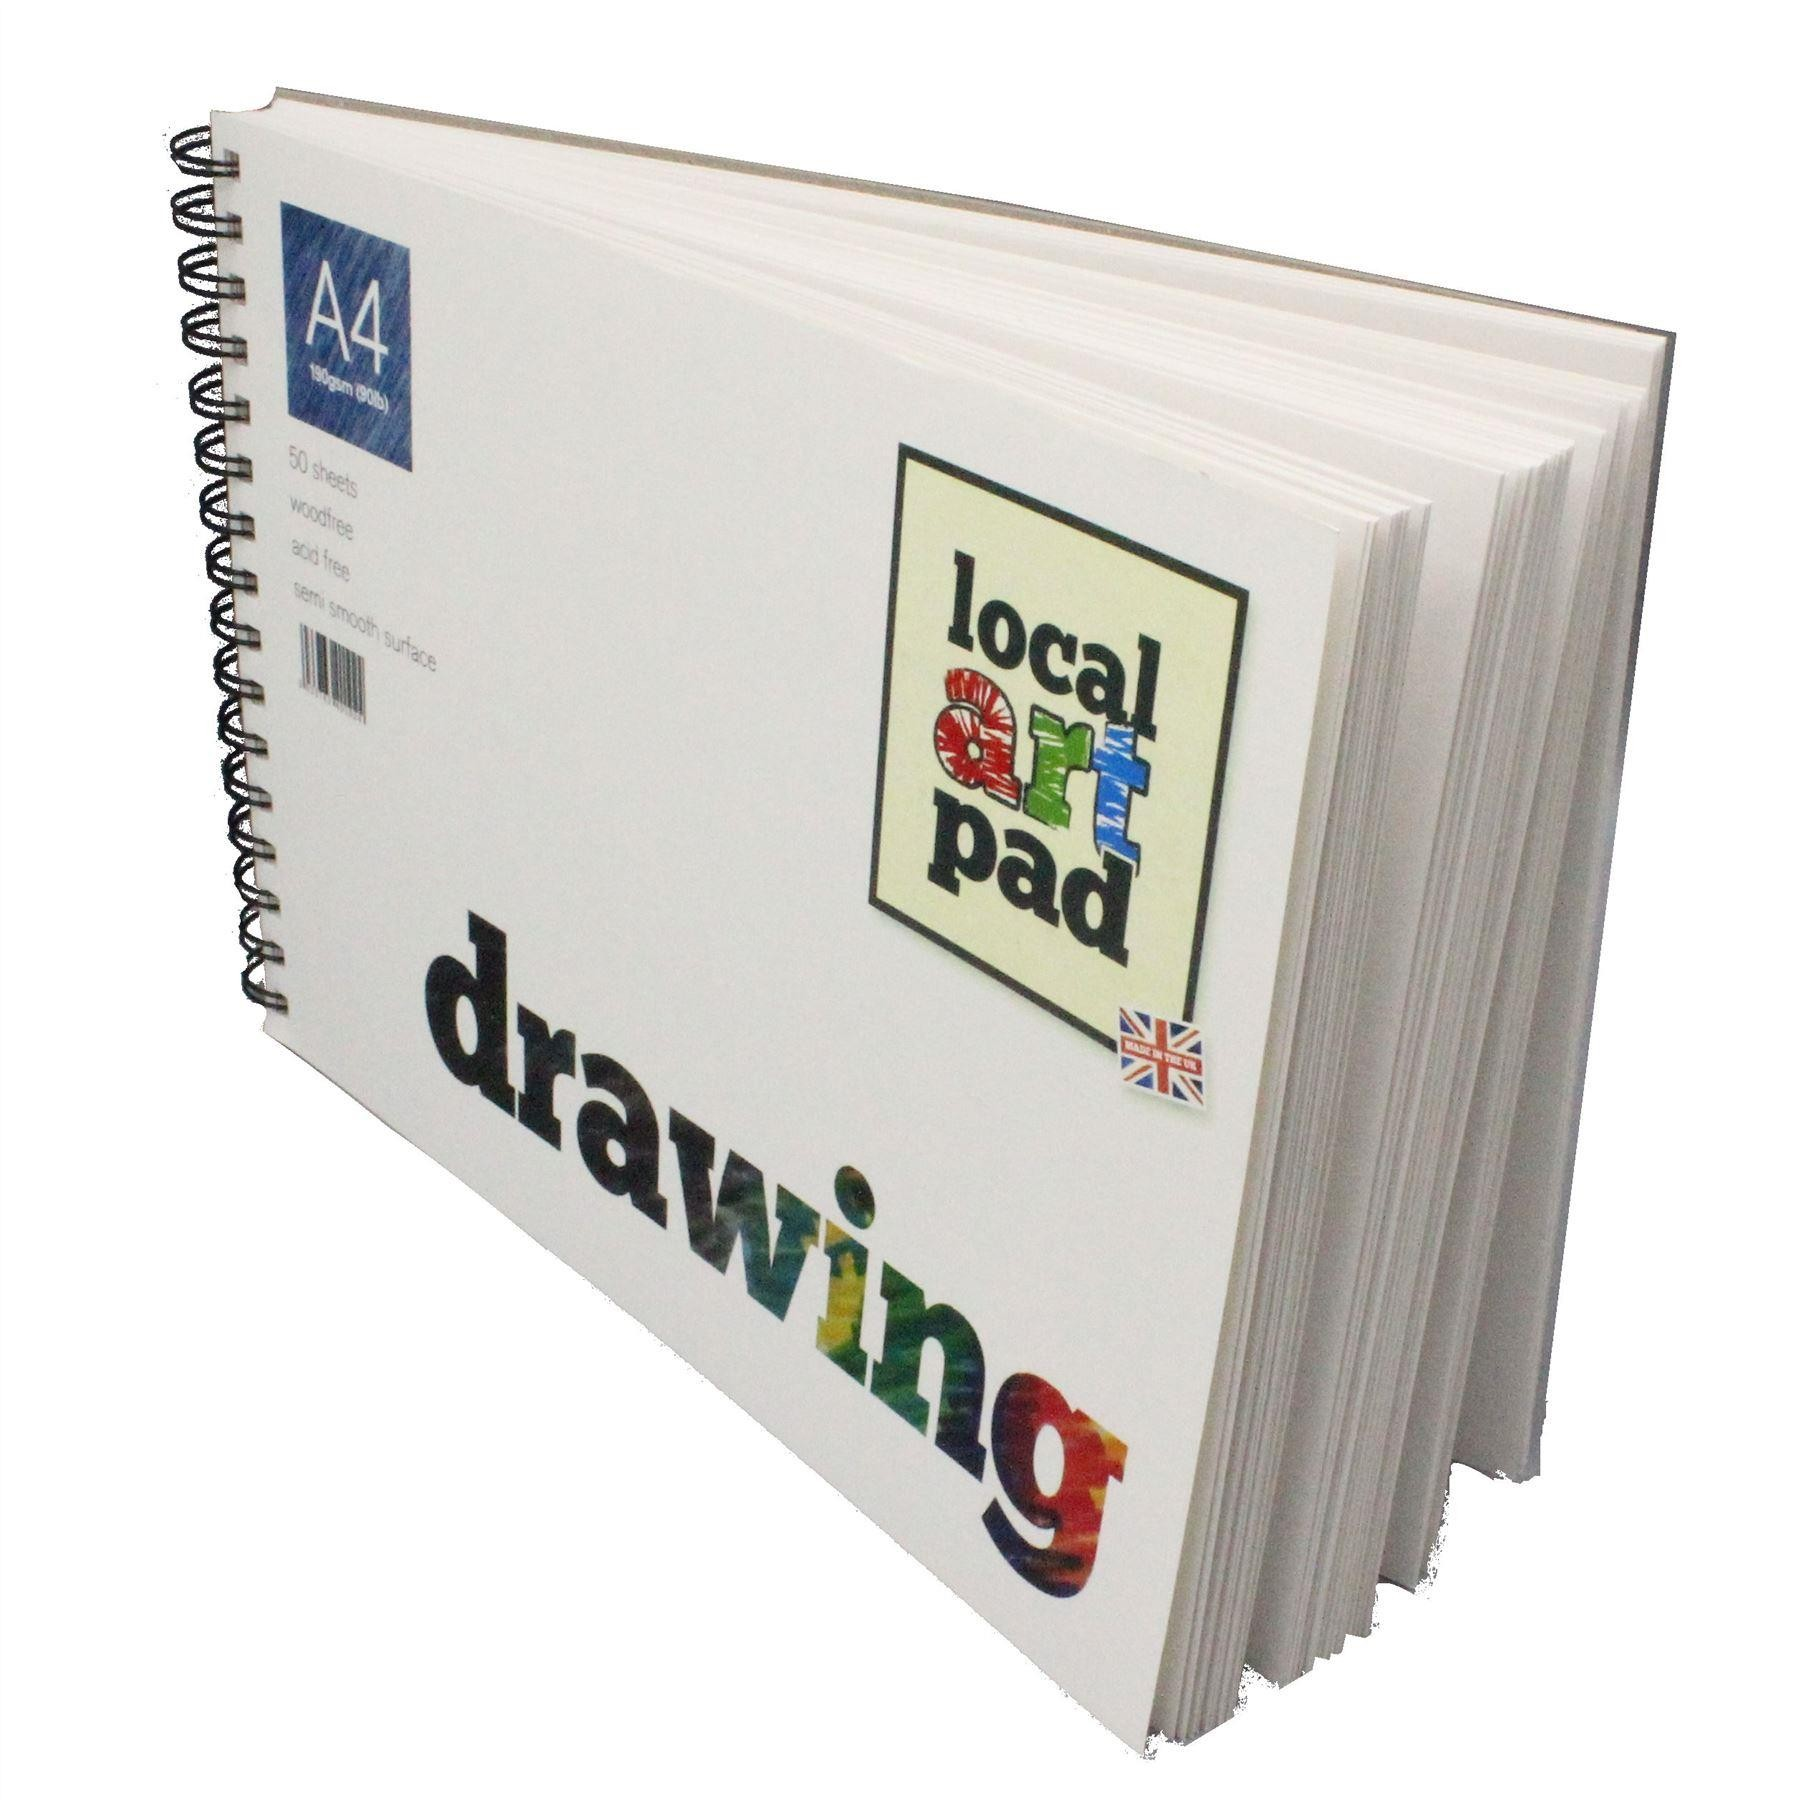 Local art pad perfect artists drawing pads A£, A4, or A5 190gsm